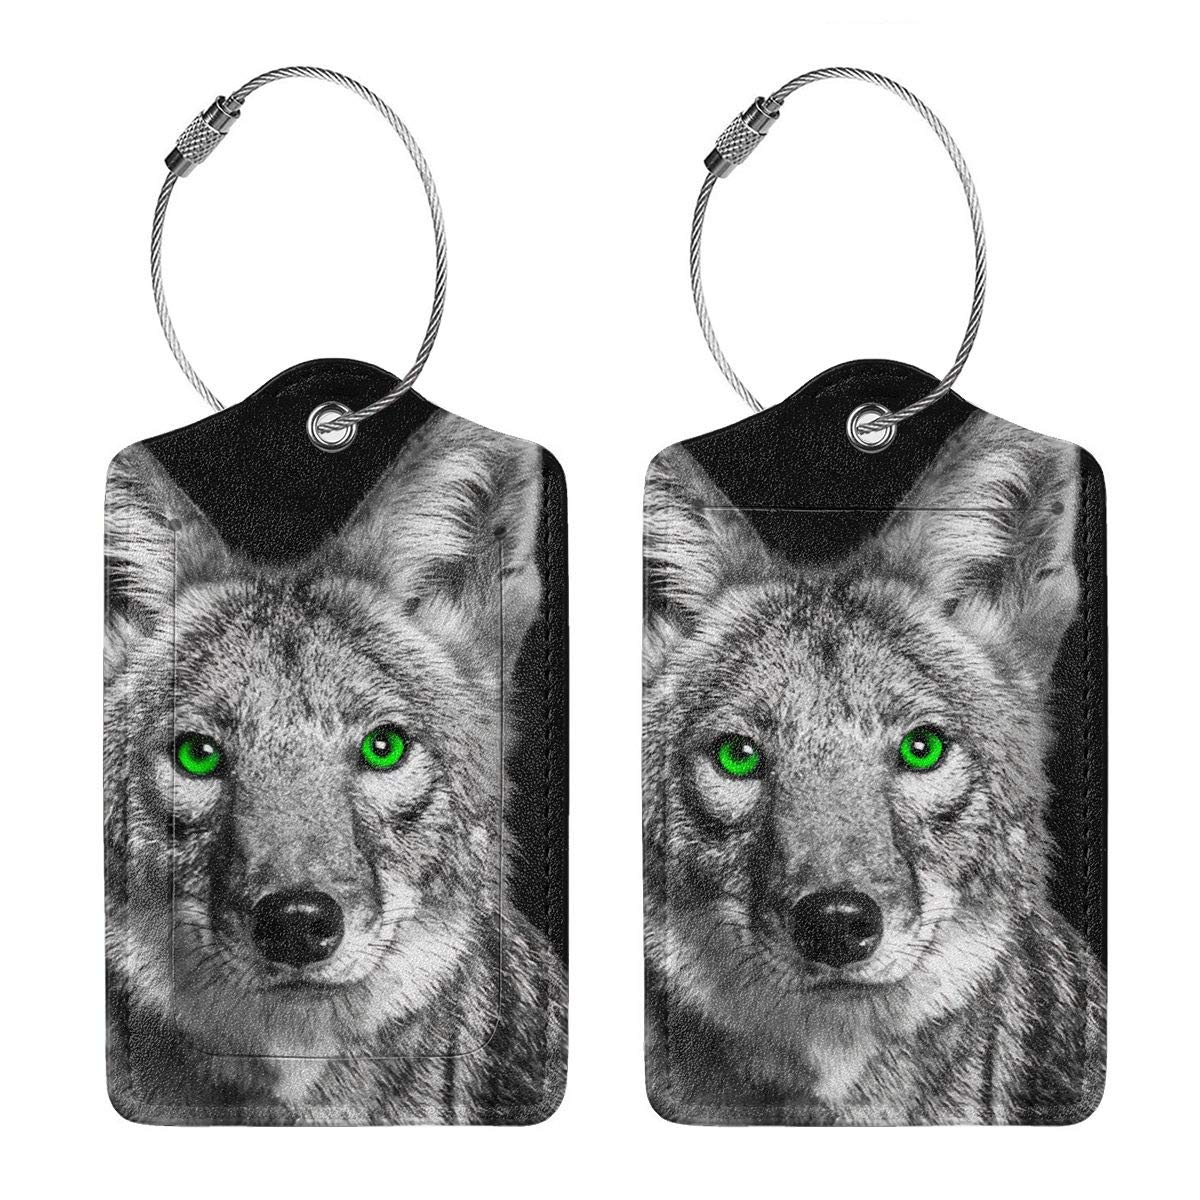 Green Eyed Coyote Travel Luggage Tags With Full Privacy Cover Leather Case And Stainless Steel Loop